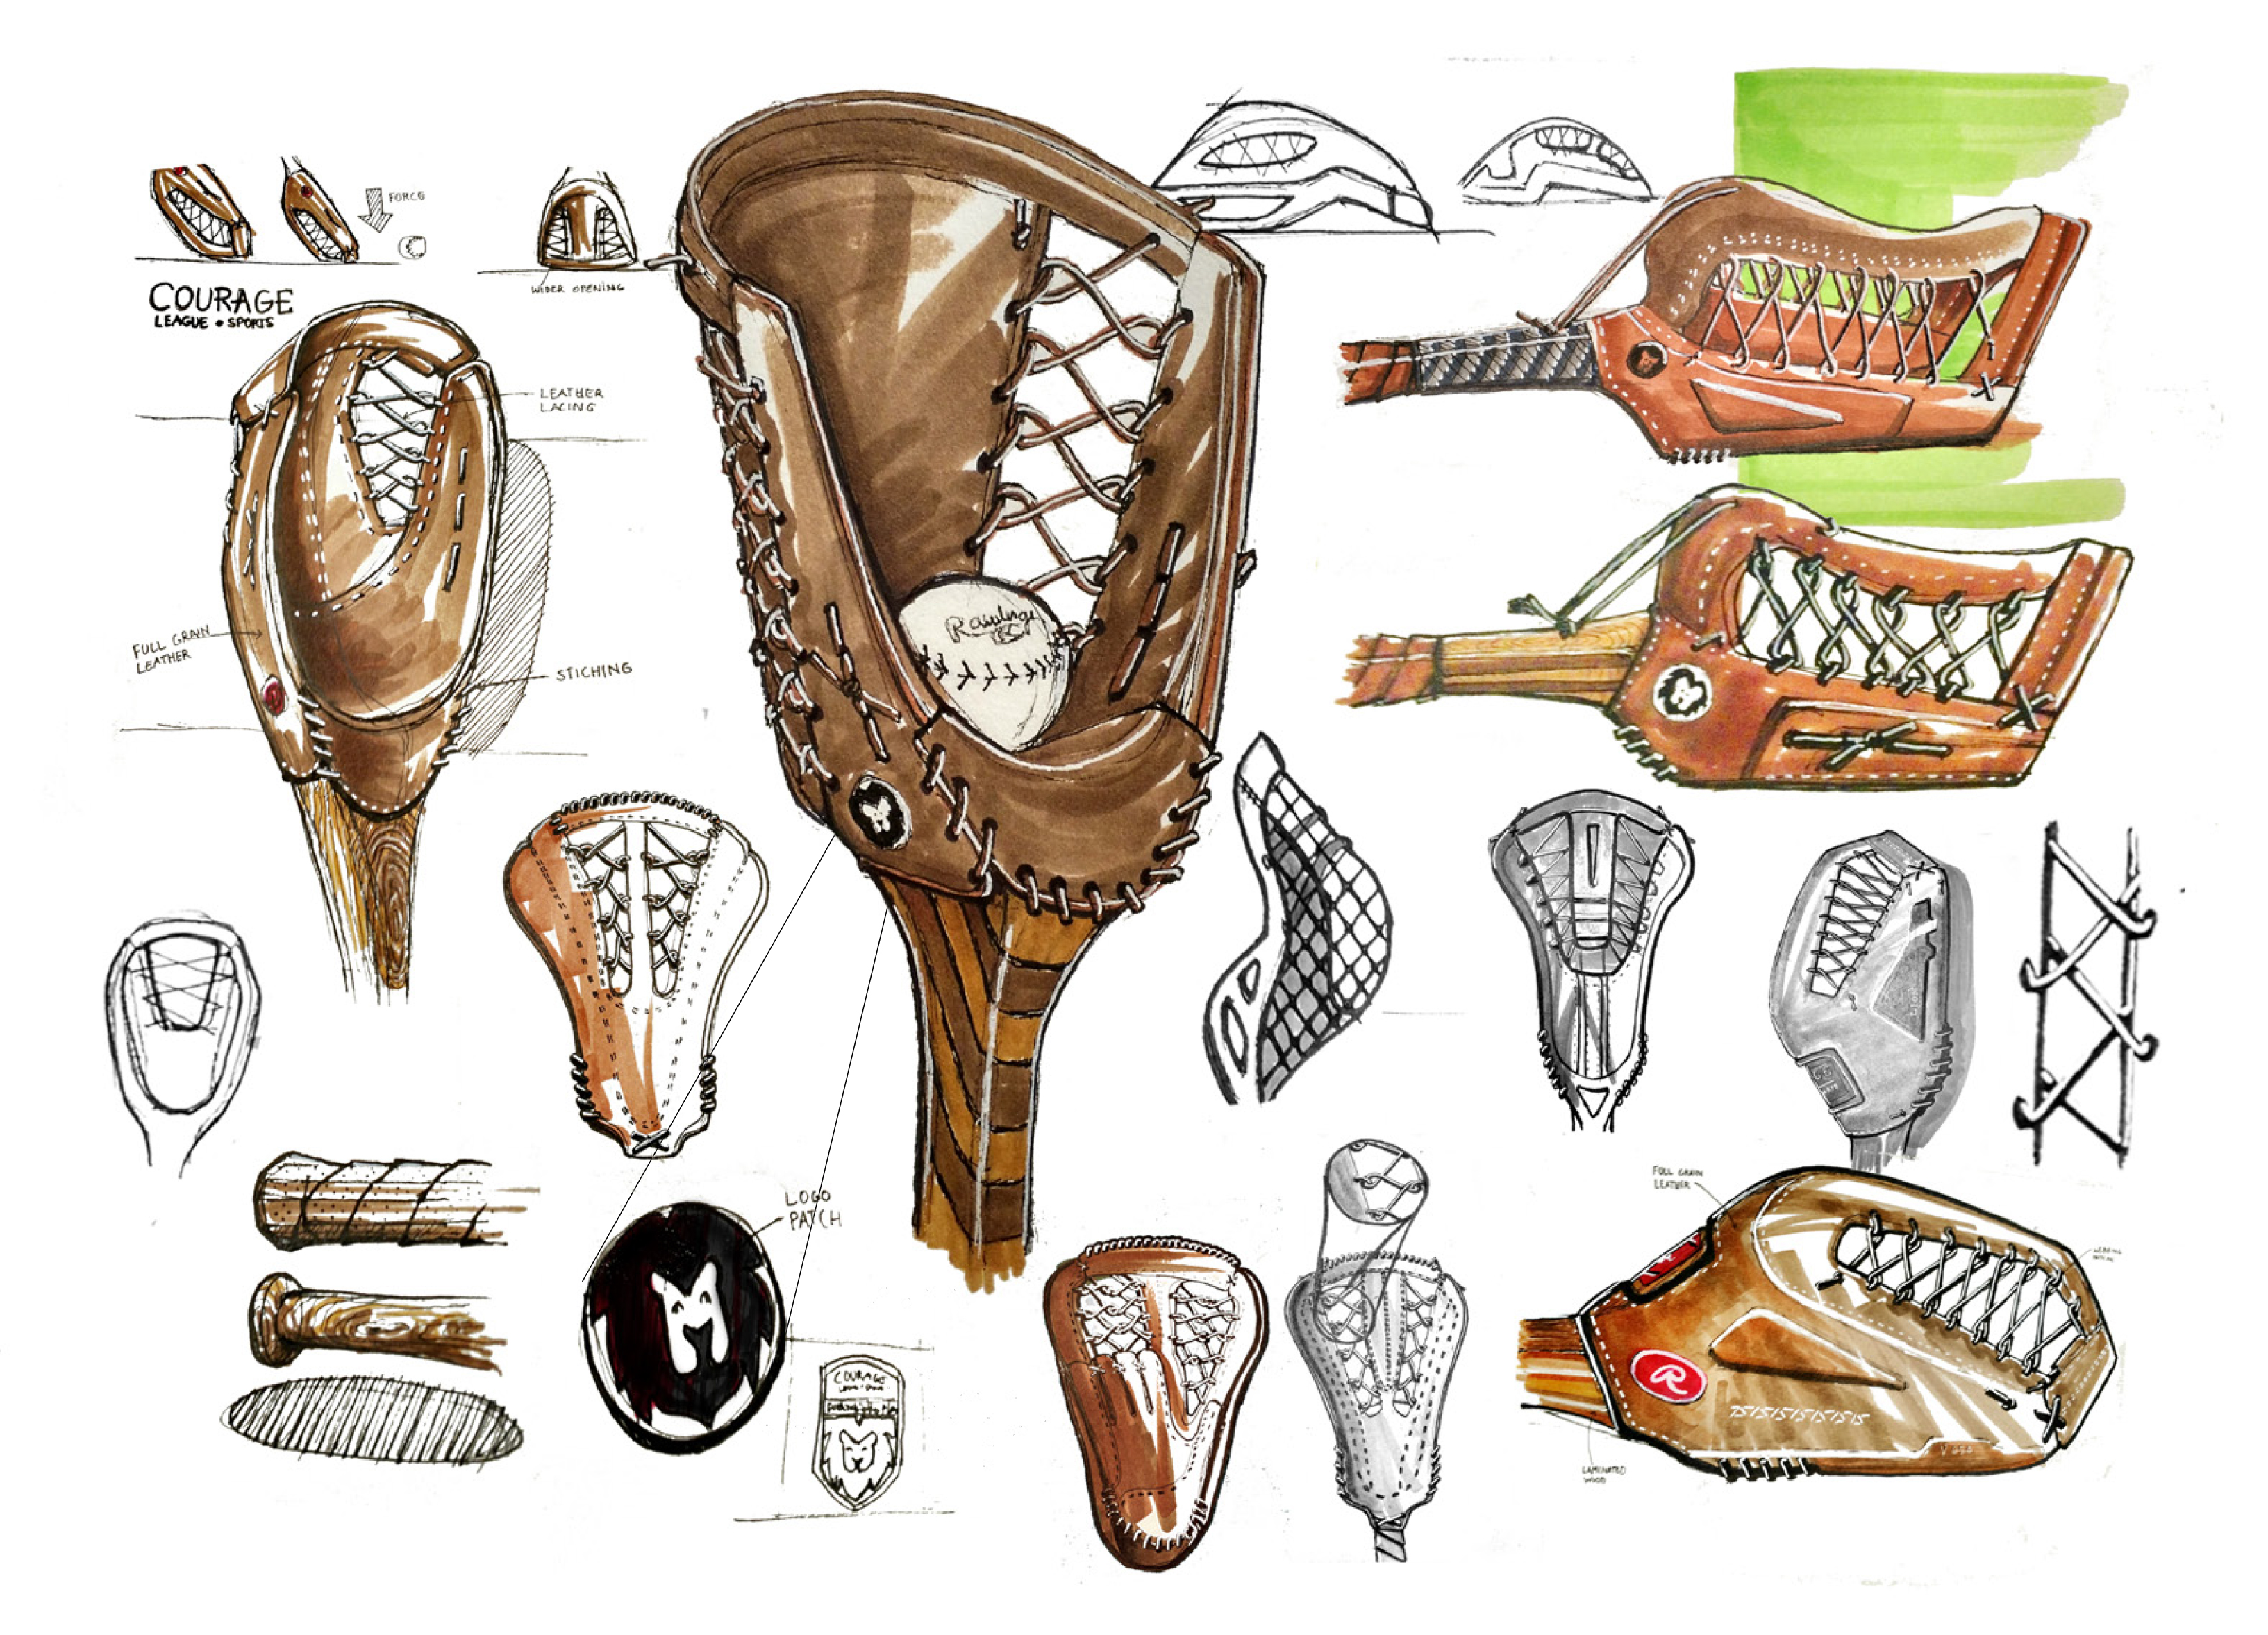 Courage League Mitt sketches by Joe Craig-Ferraz